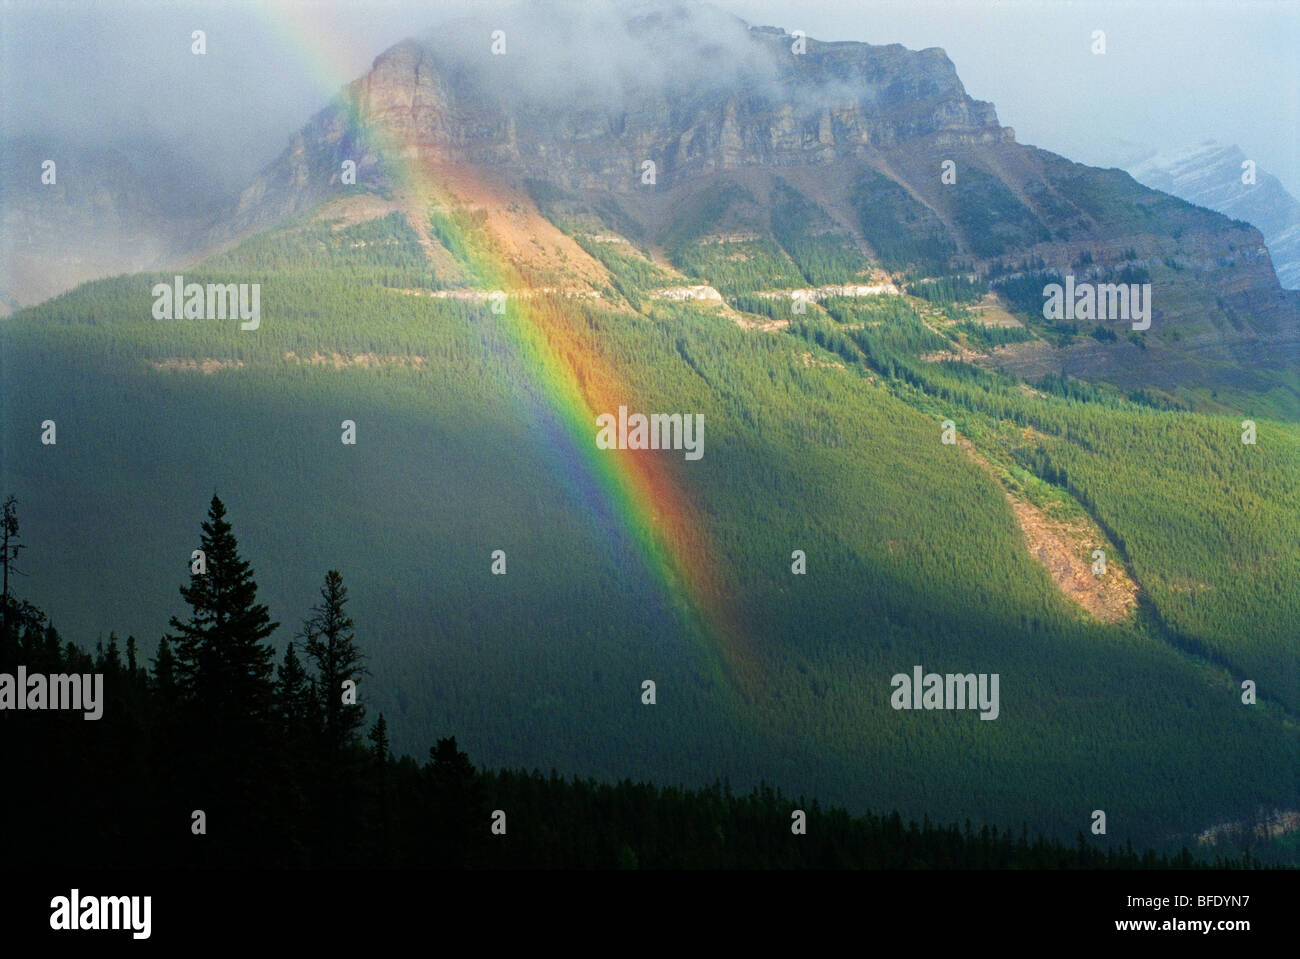 Rainbow, Icefields Parkway near Peyto Lake, Banff National Park, Alberta, Canada - Stock Image